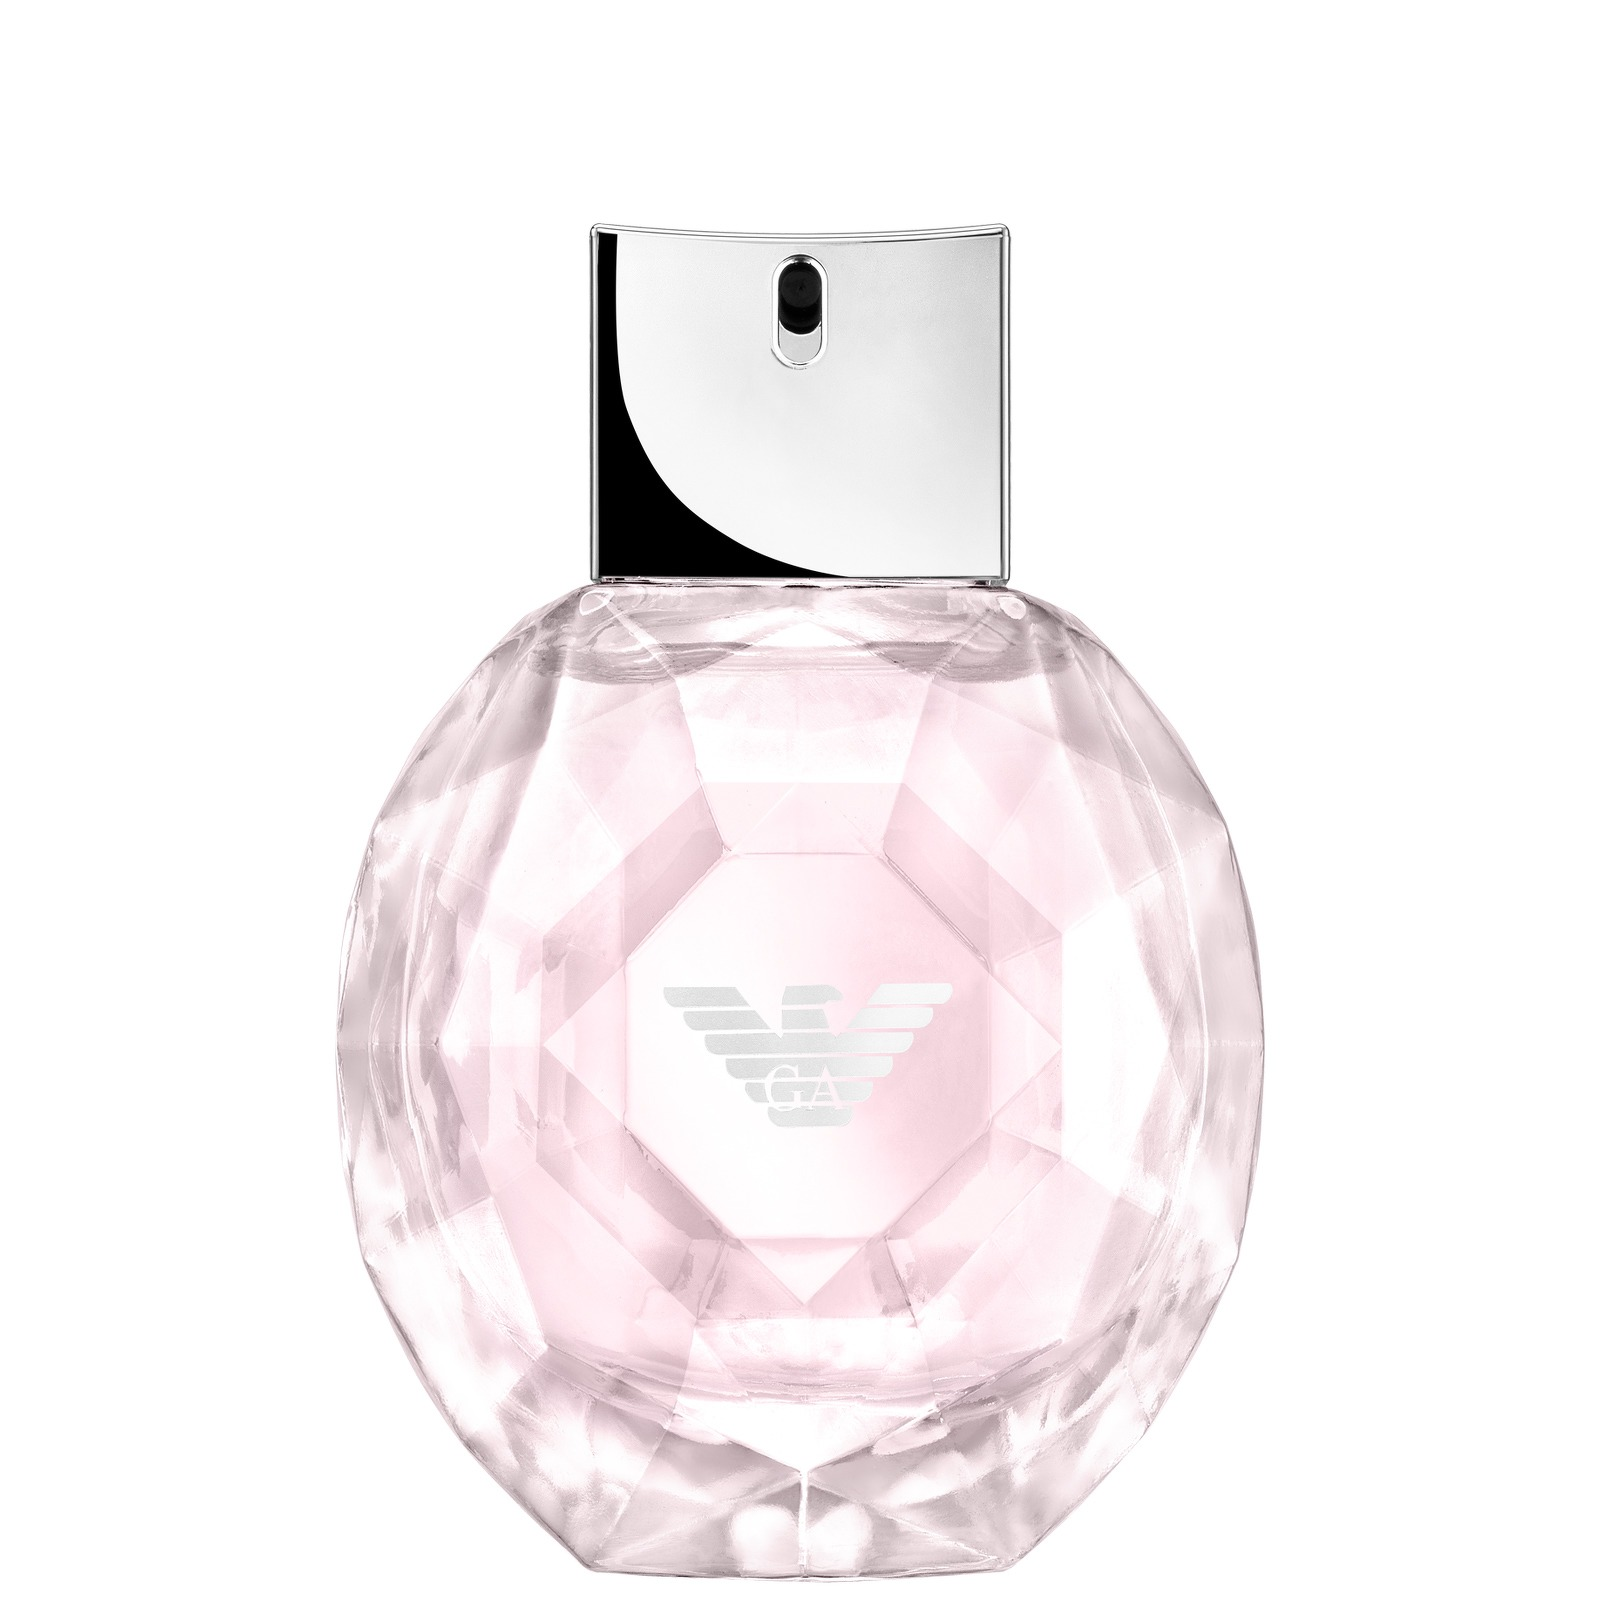 Emporio Armani Diamonds Rose Eau De Toilette Spray 30ml Perfume